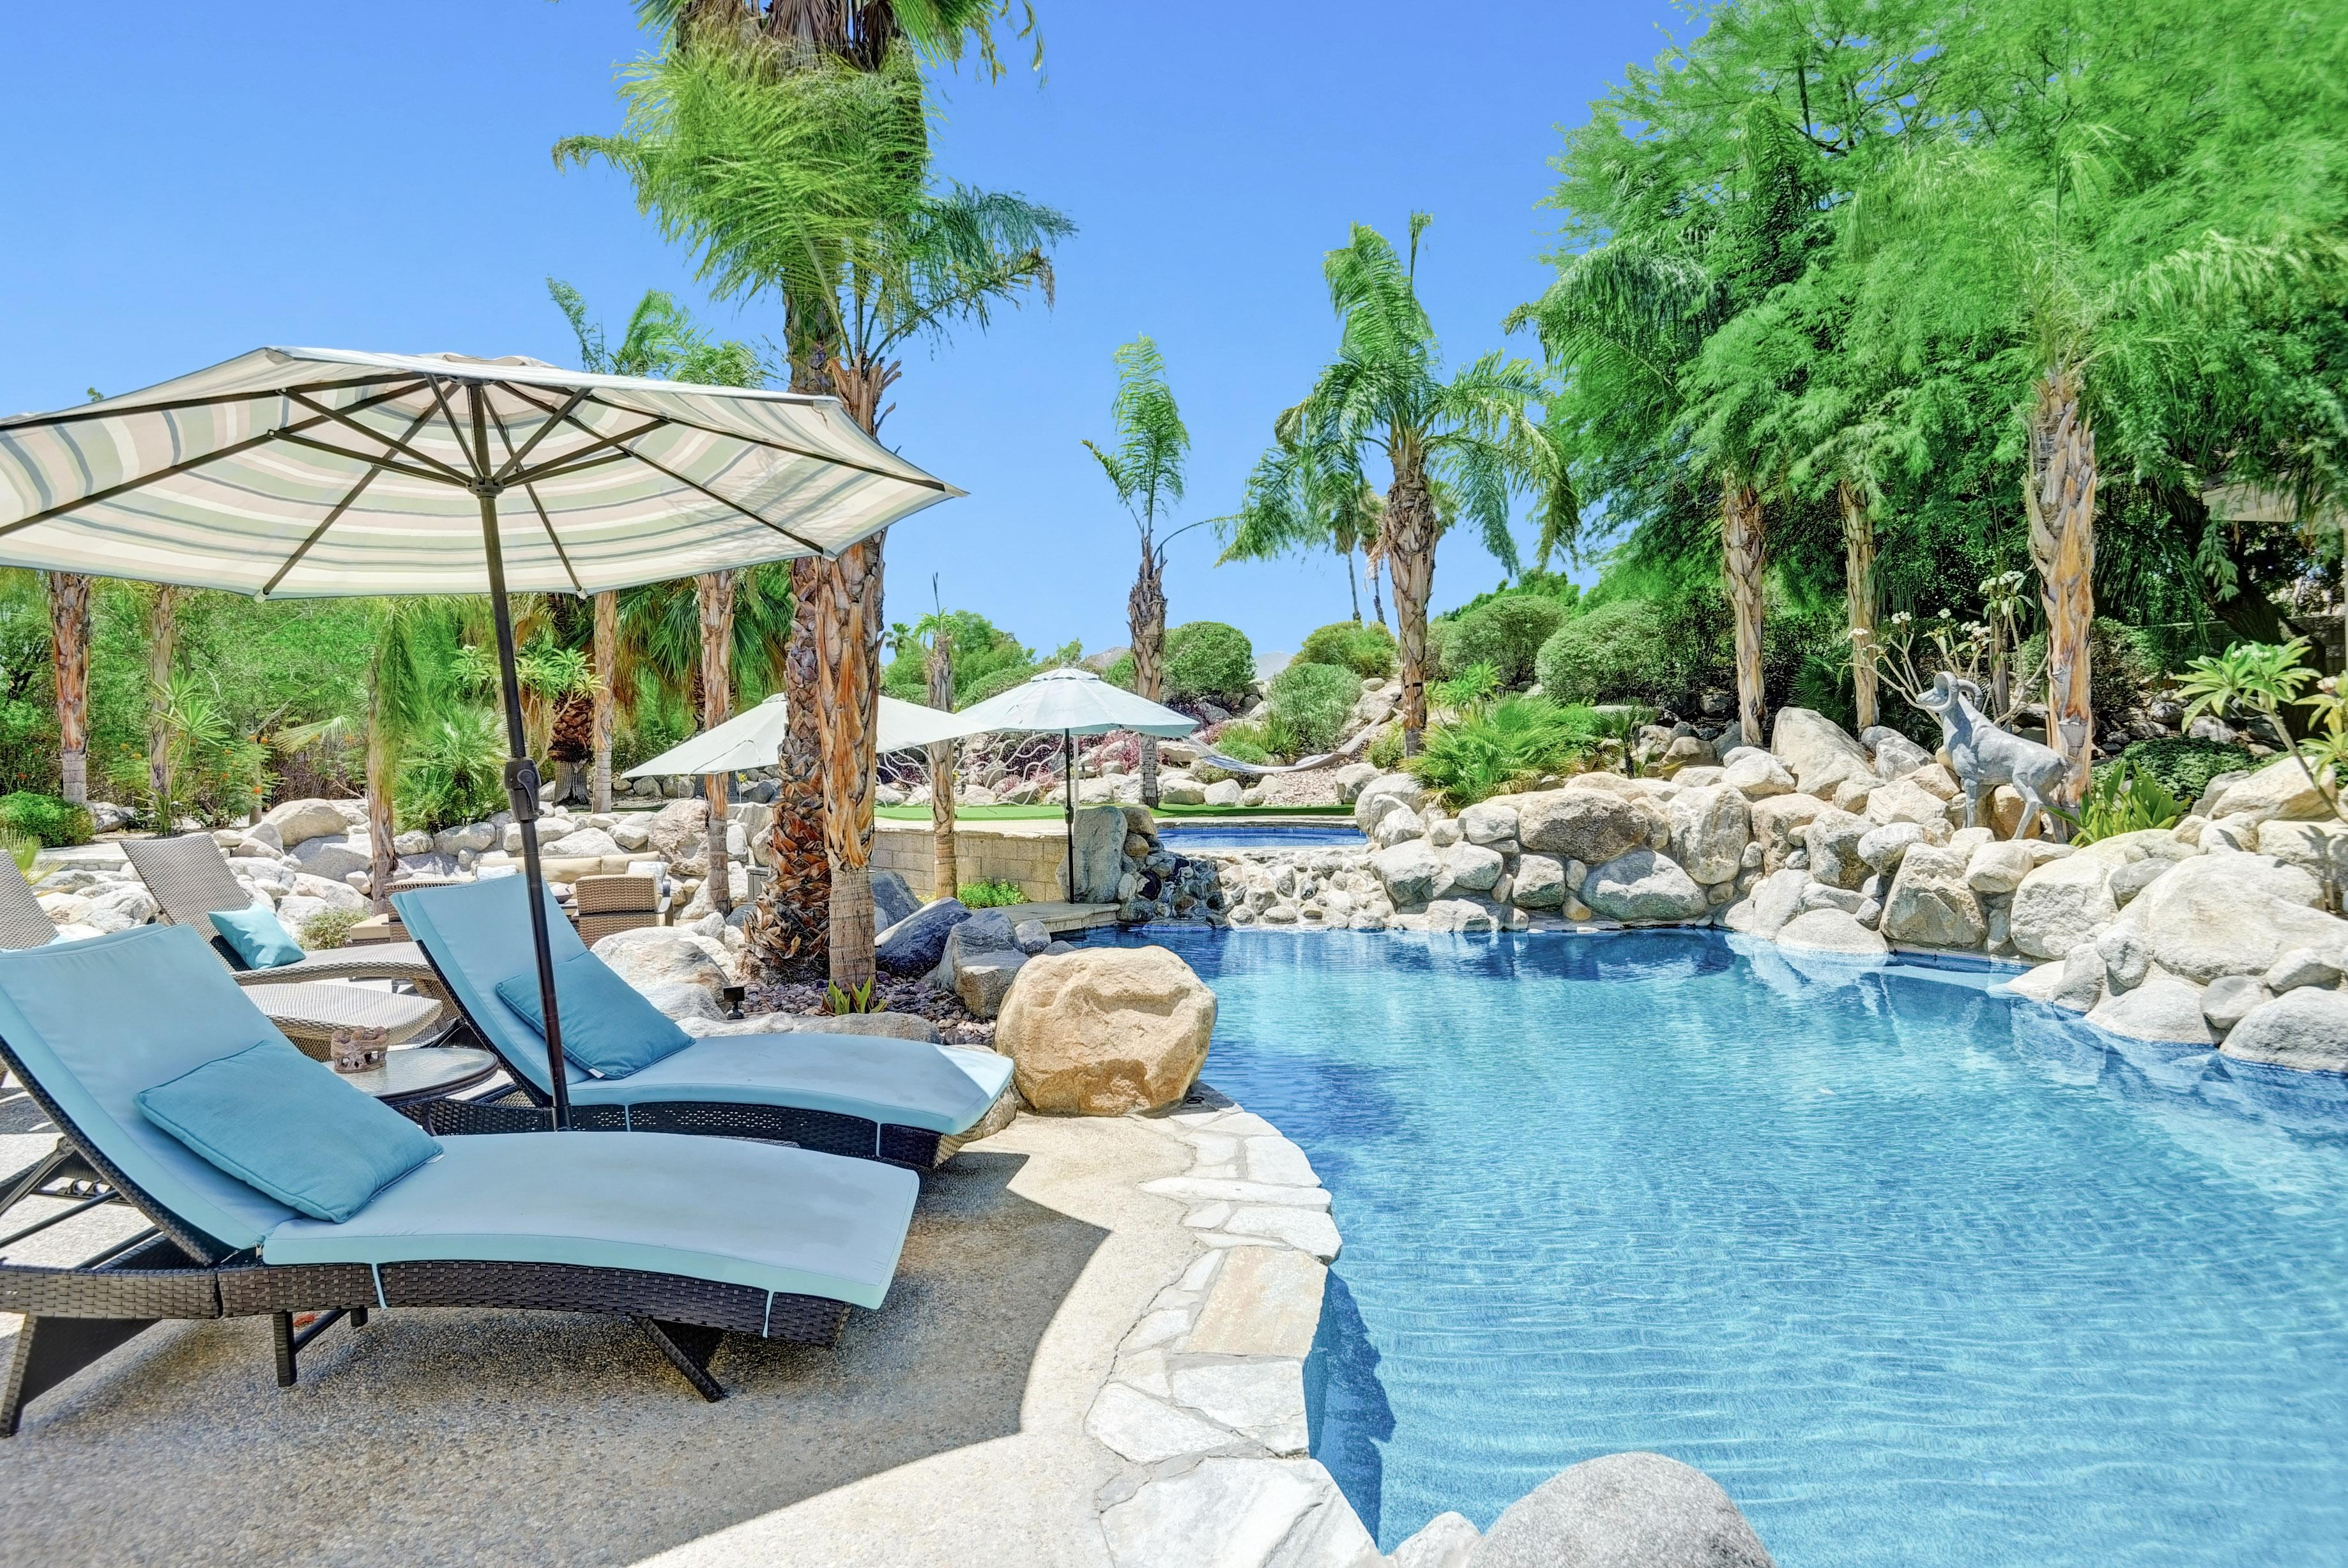 Property Image 1 - Palm Desert Villa Paradise w/Pool, Spas & Casitas